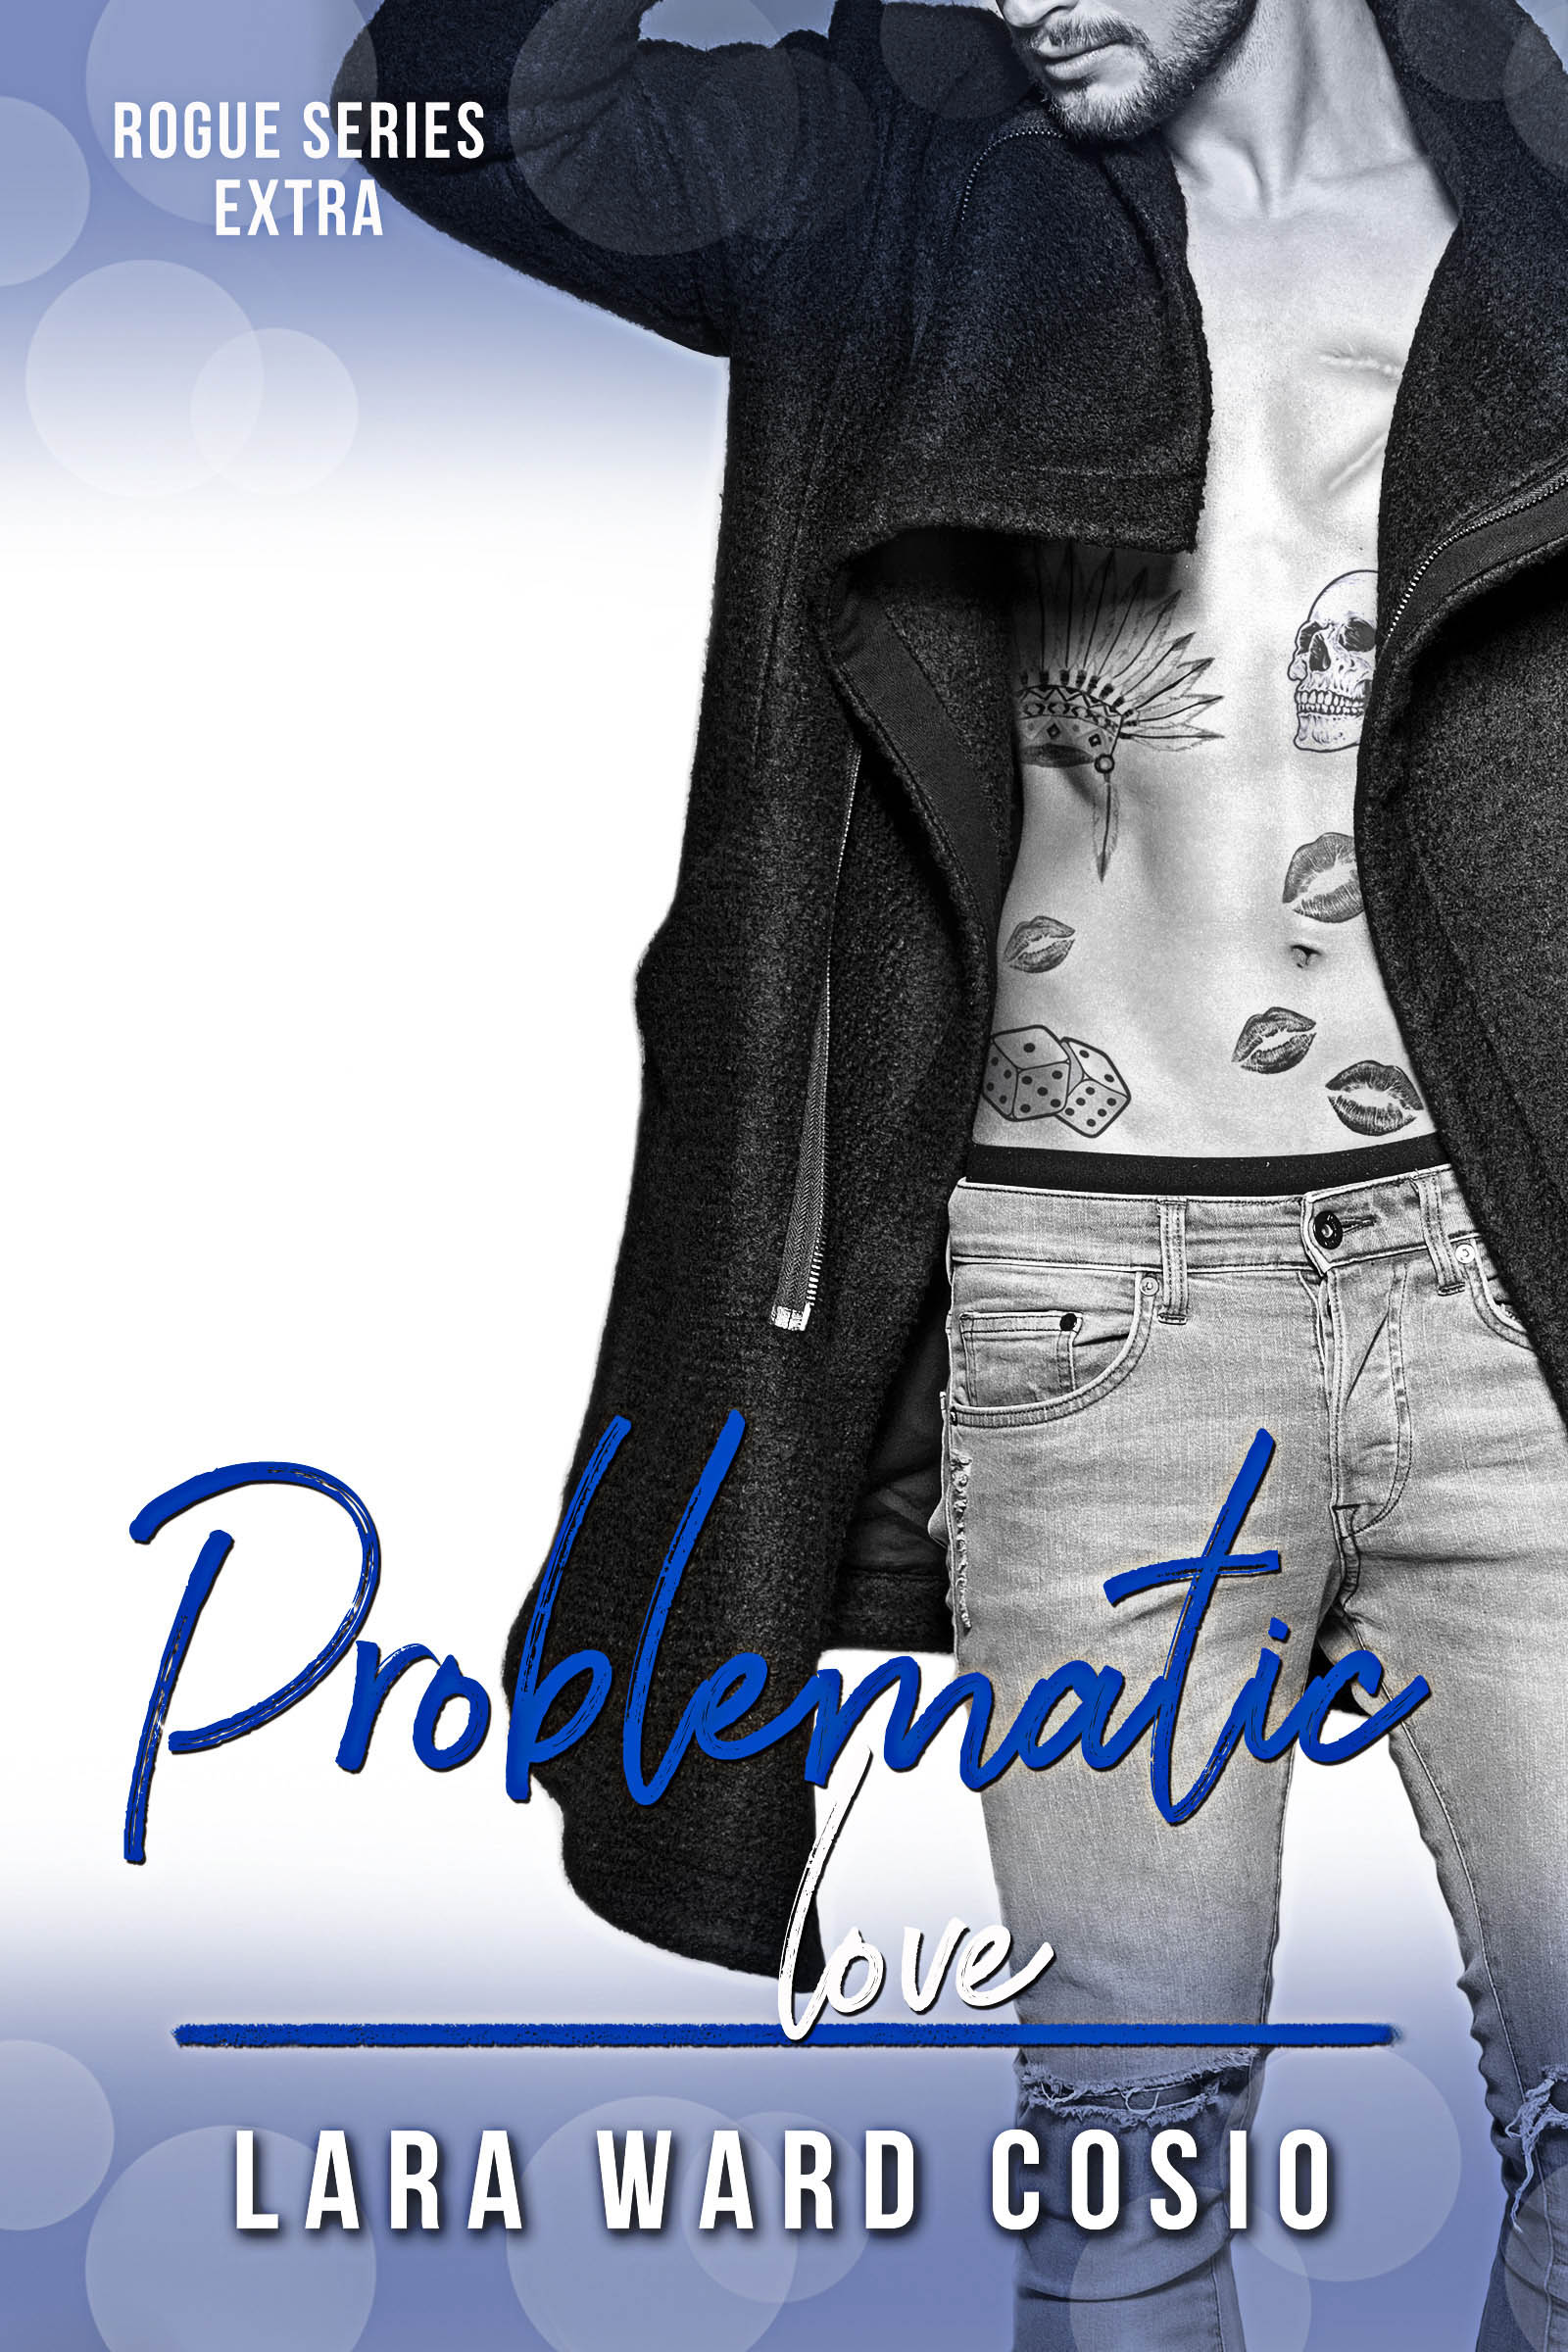 Book Cover by Chloe Belle Arts for Problematic Love by Lara Ward Cosio